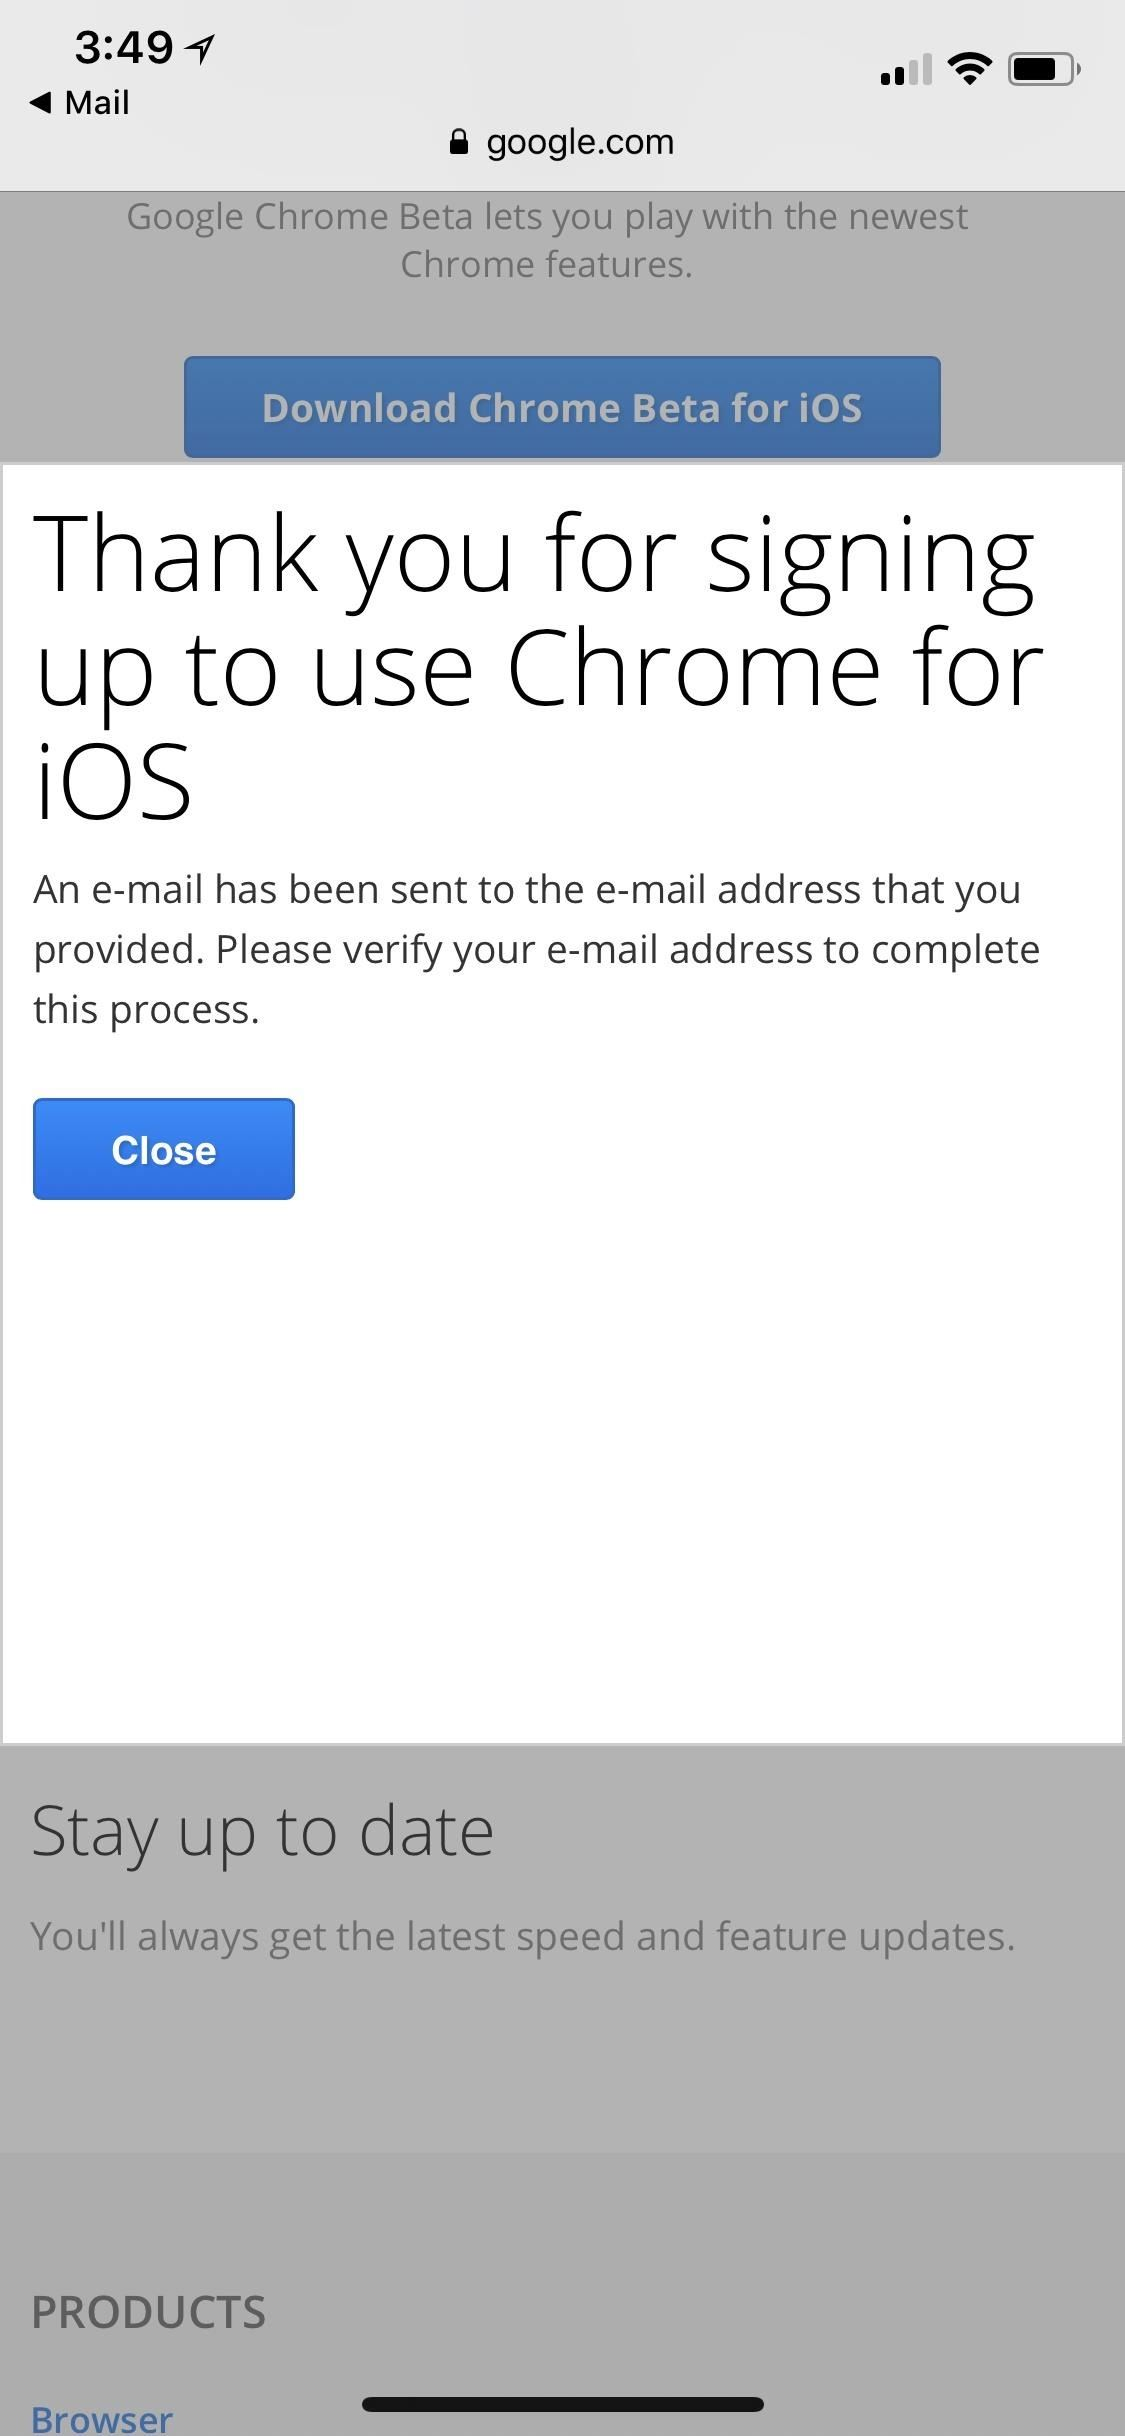 Google Chrome 101: How to Install the Beta Browser on iPhone